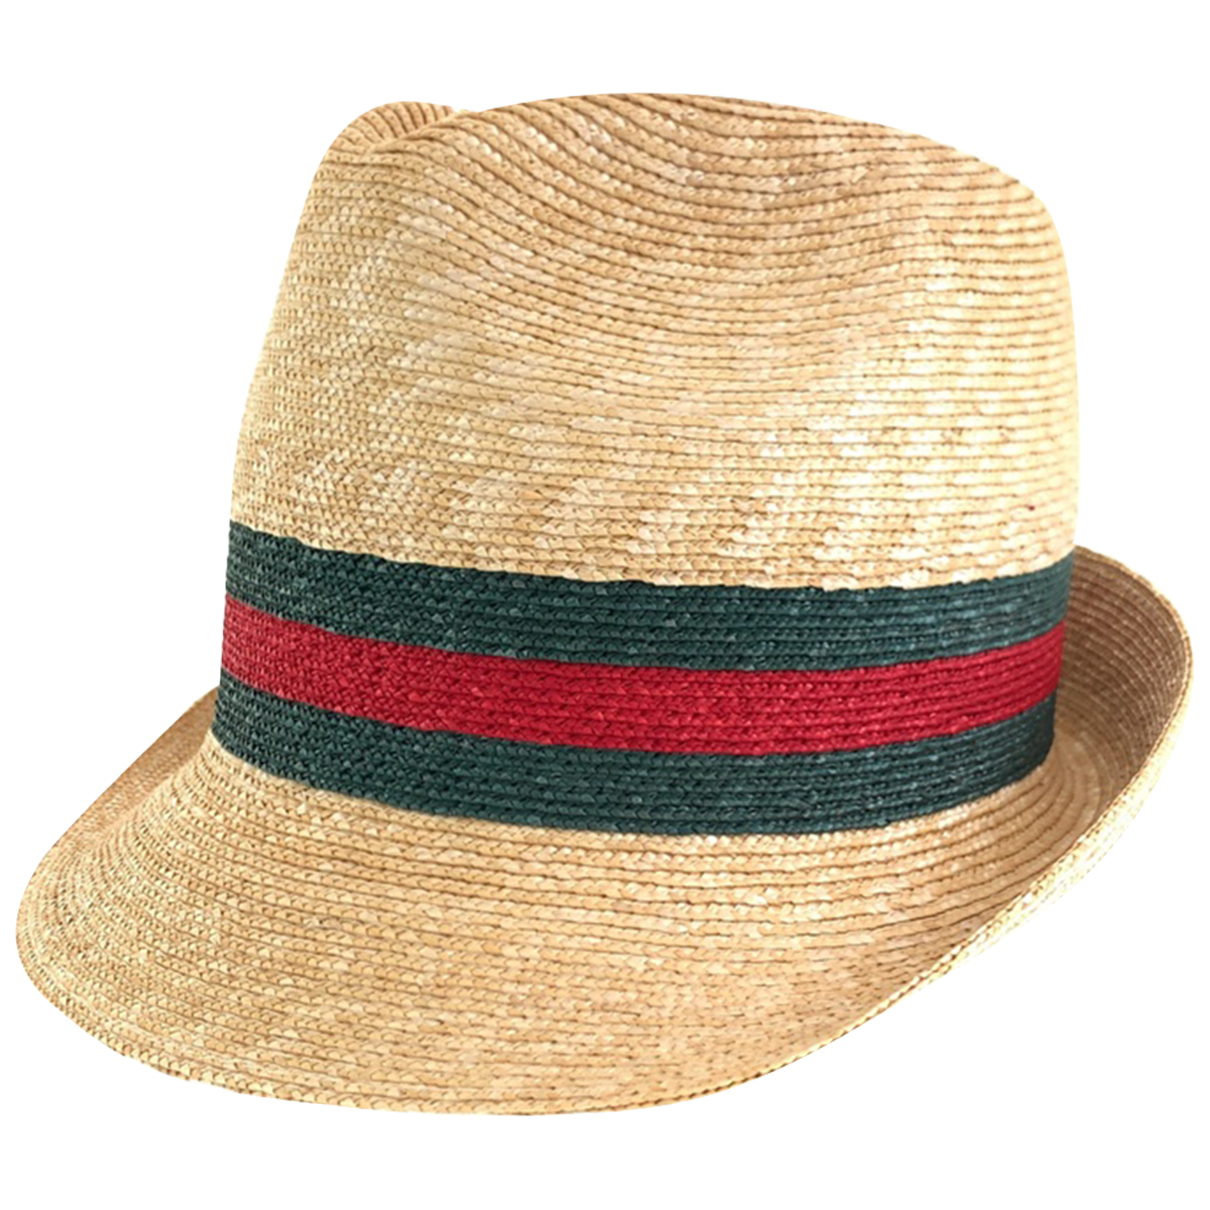 Gucci N Wicker hat for Women M International